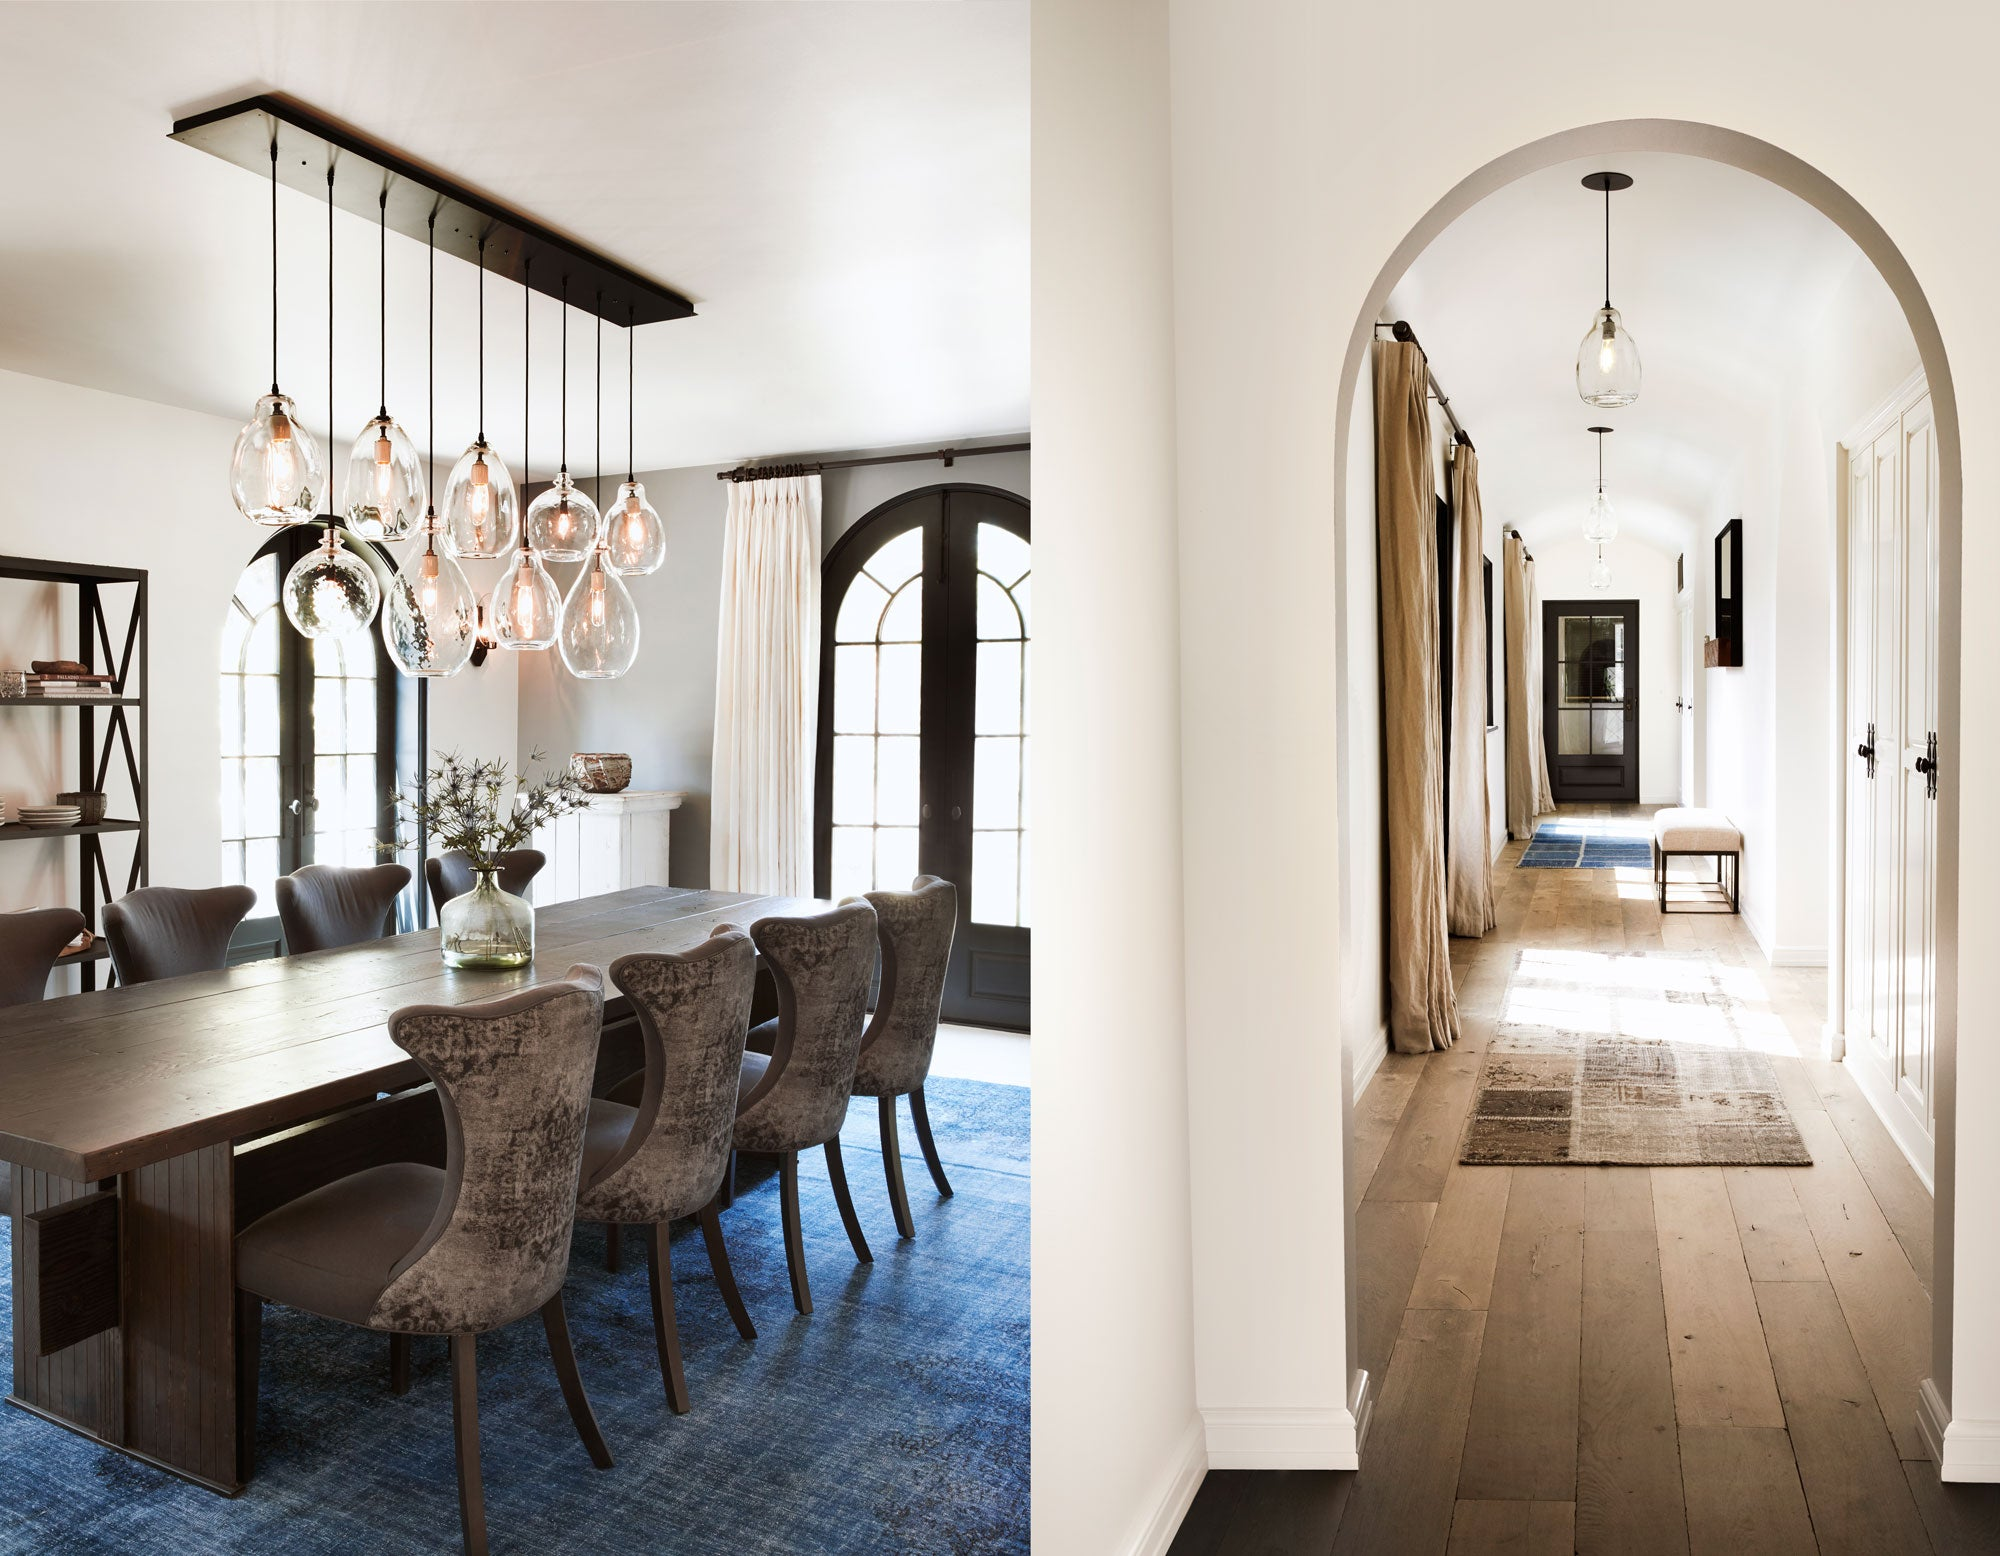 dining table withe glass pendants and a hall way with arches